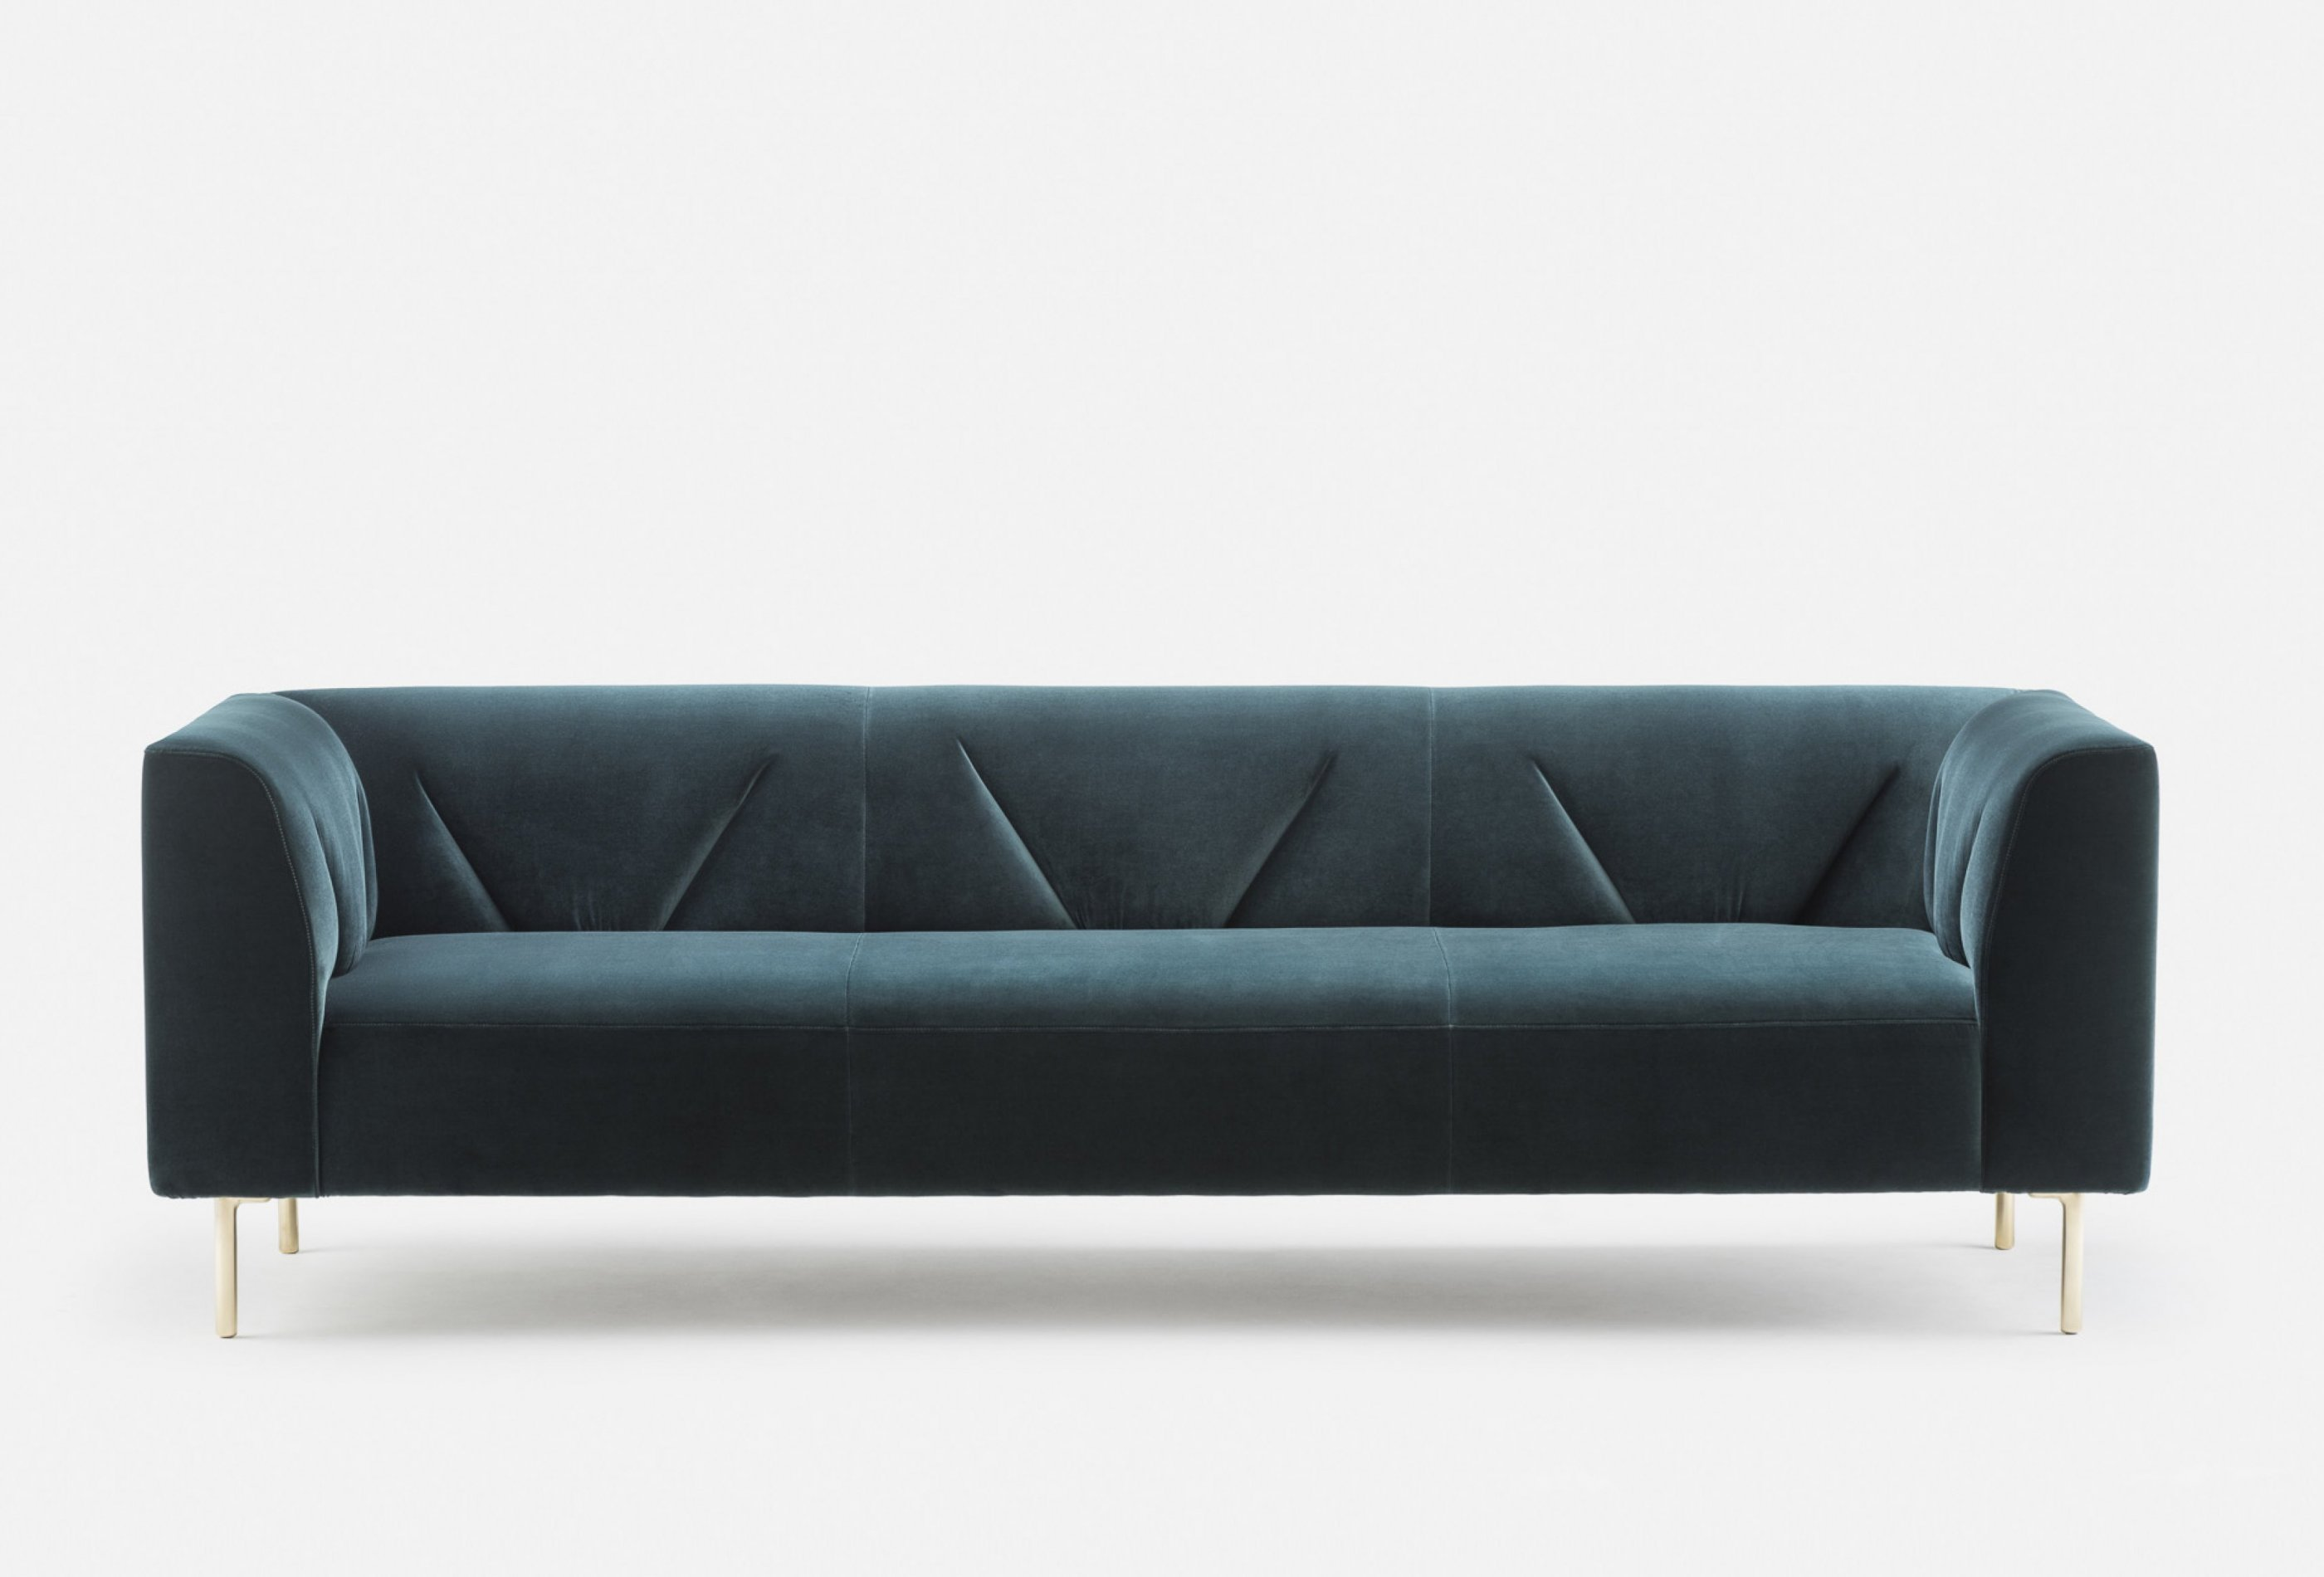 bensen lite sofa joss and main sectional modern sofas by contemporary designers at haute living